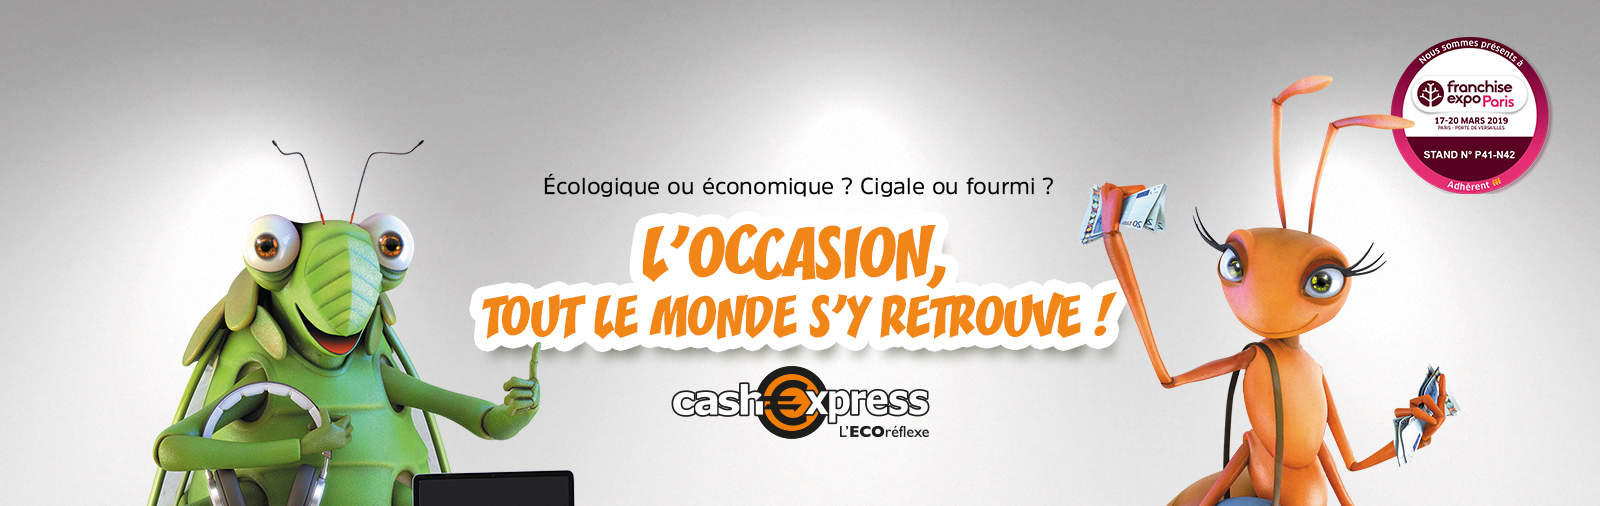 CASH EXPRESS HAB MARS 19